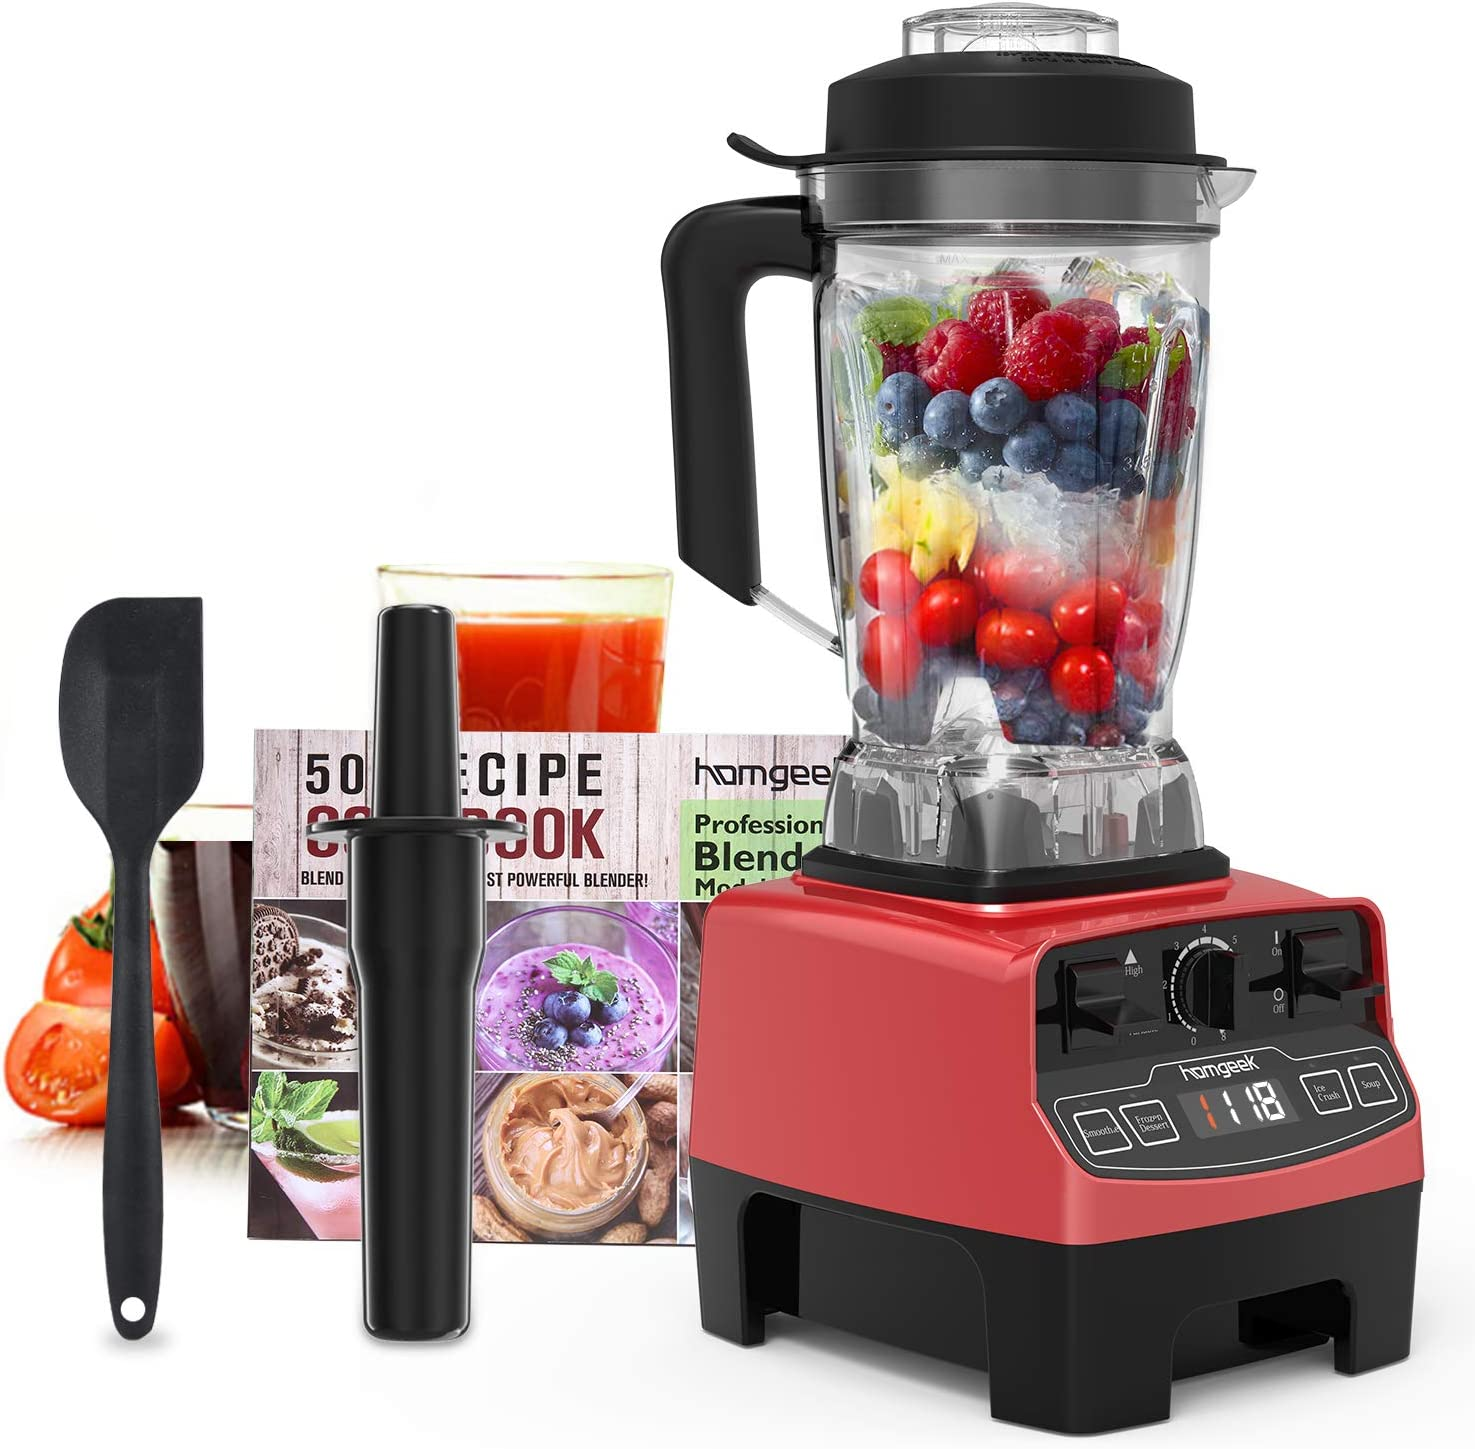 homgeek Countertop Smoothie Blender 1450W, high speed Blender for kitchen with 4 Blending Preset programs, 8 Adjustable Speeds Control and 68 Oz Tritan Pitcher for Shake ,smoothies,soup